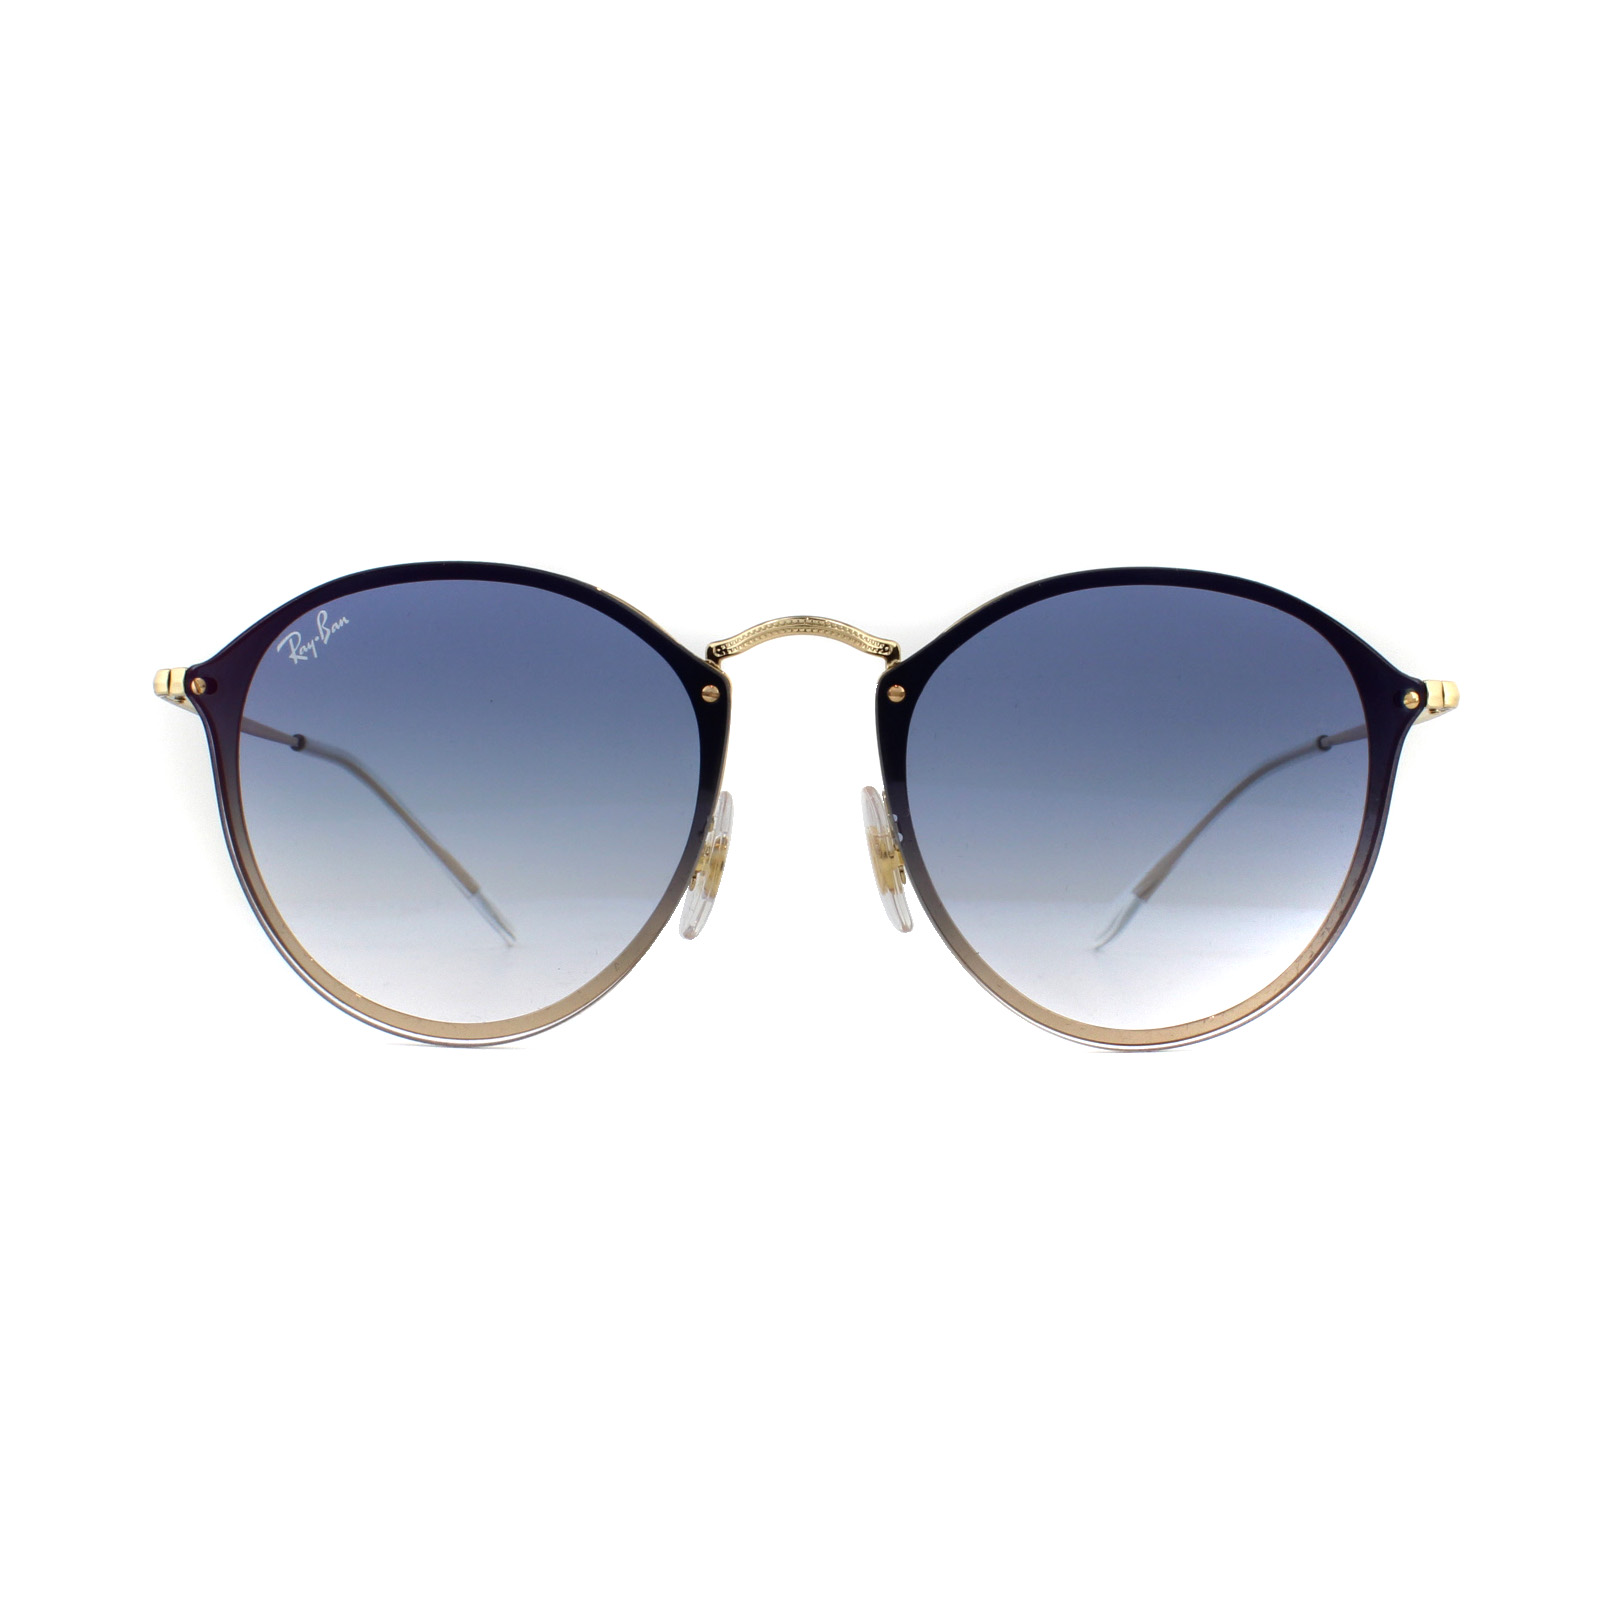 08bccca4f8423 Sentinel Ray-Ban Sunglasses Blaze Round RB3574N 001 X0 Gold Blue Gradient  Red Mirrored